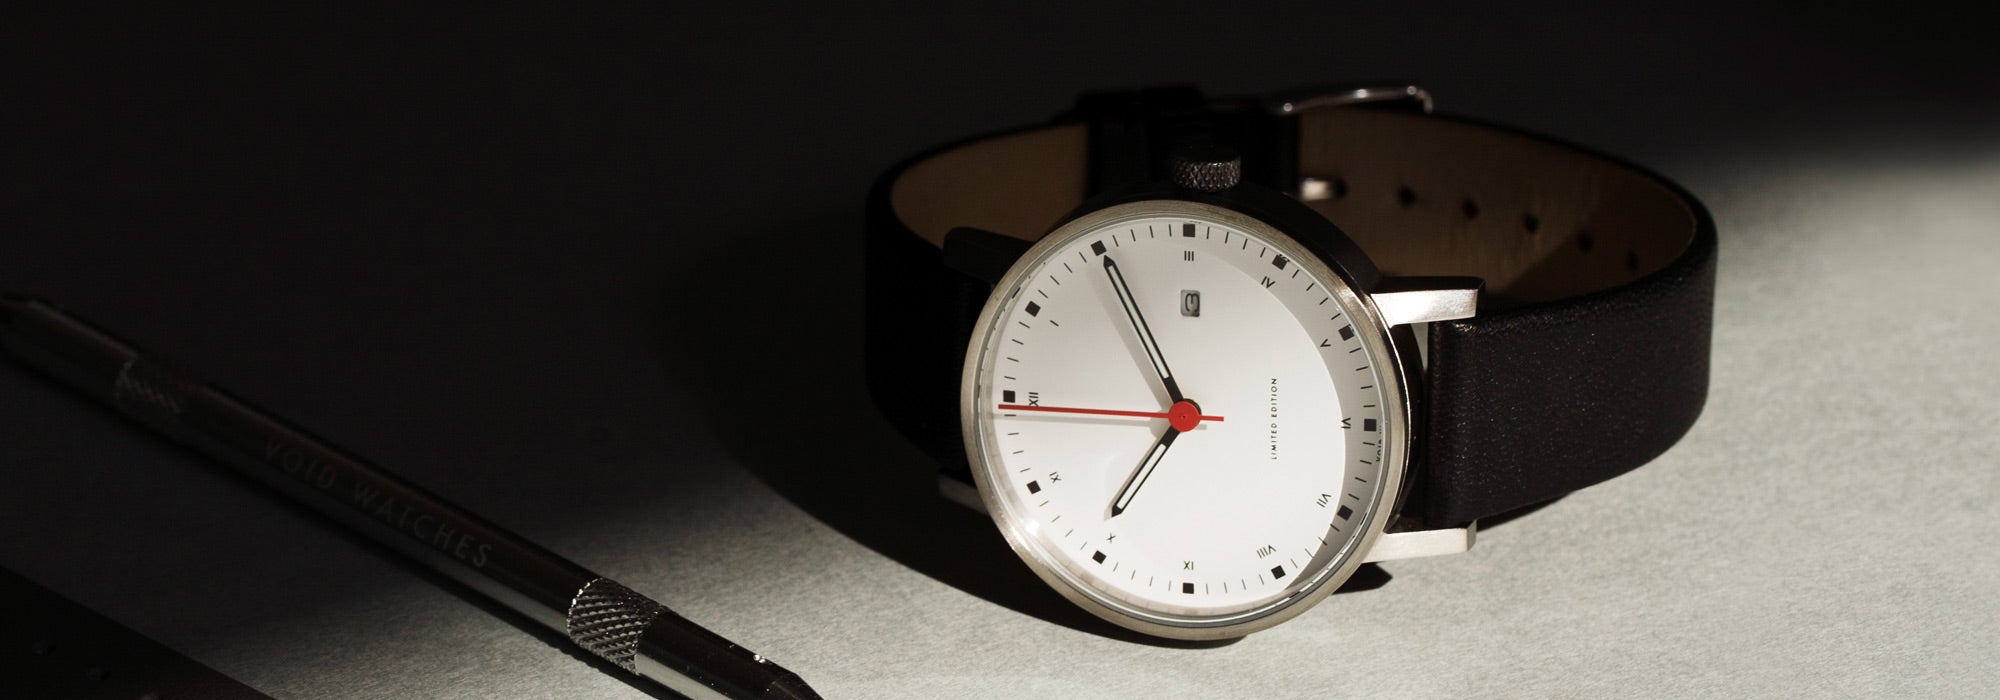 VOID Watches - Limited Editions